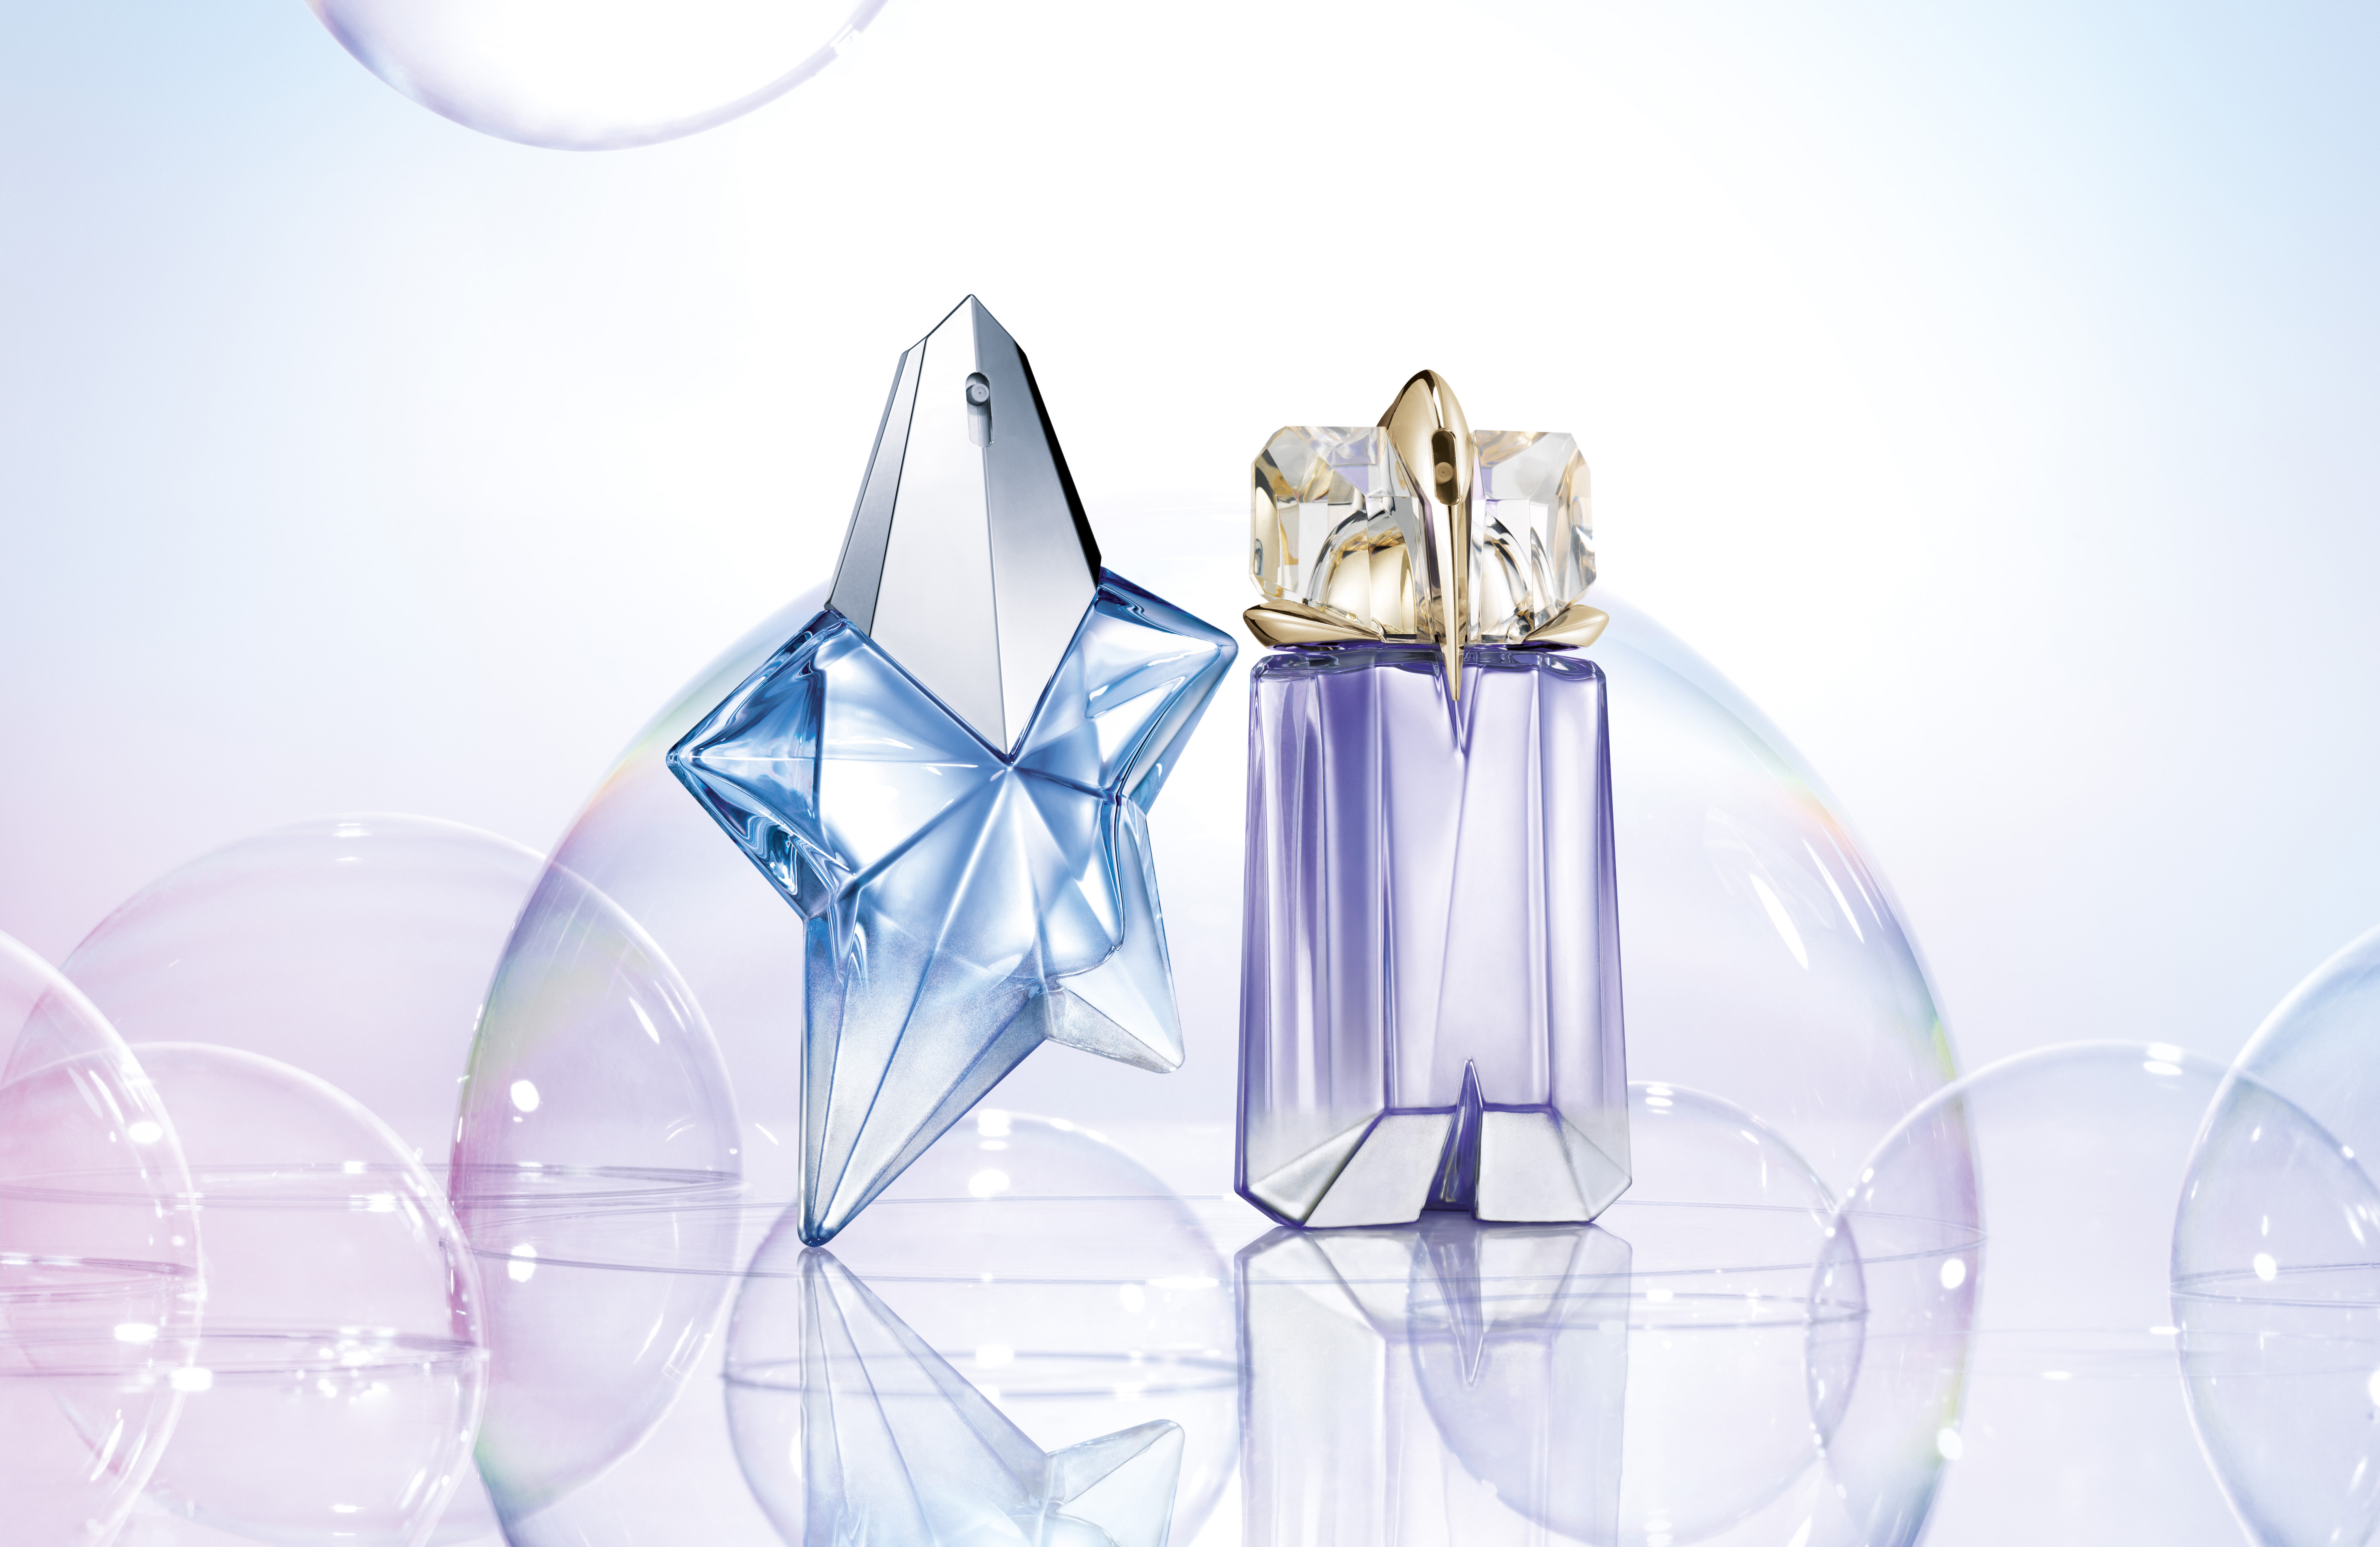 Flower Water Chic – Thierry Mugler Angel and Alien Aqua Chic Perfume